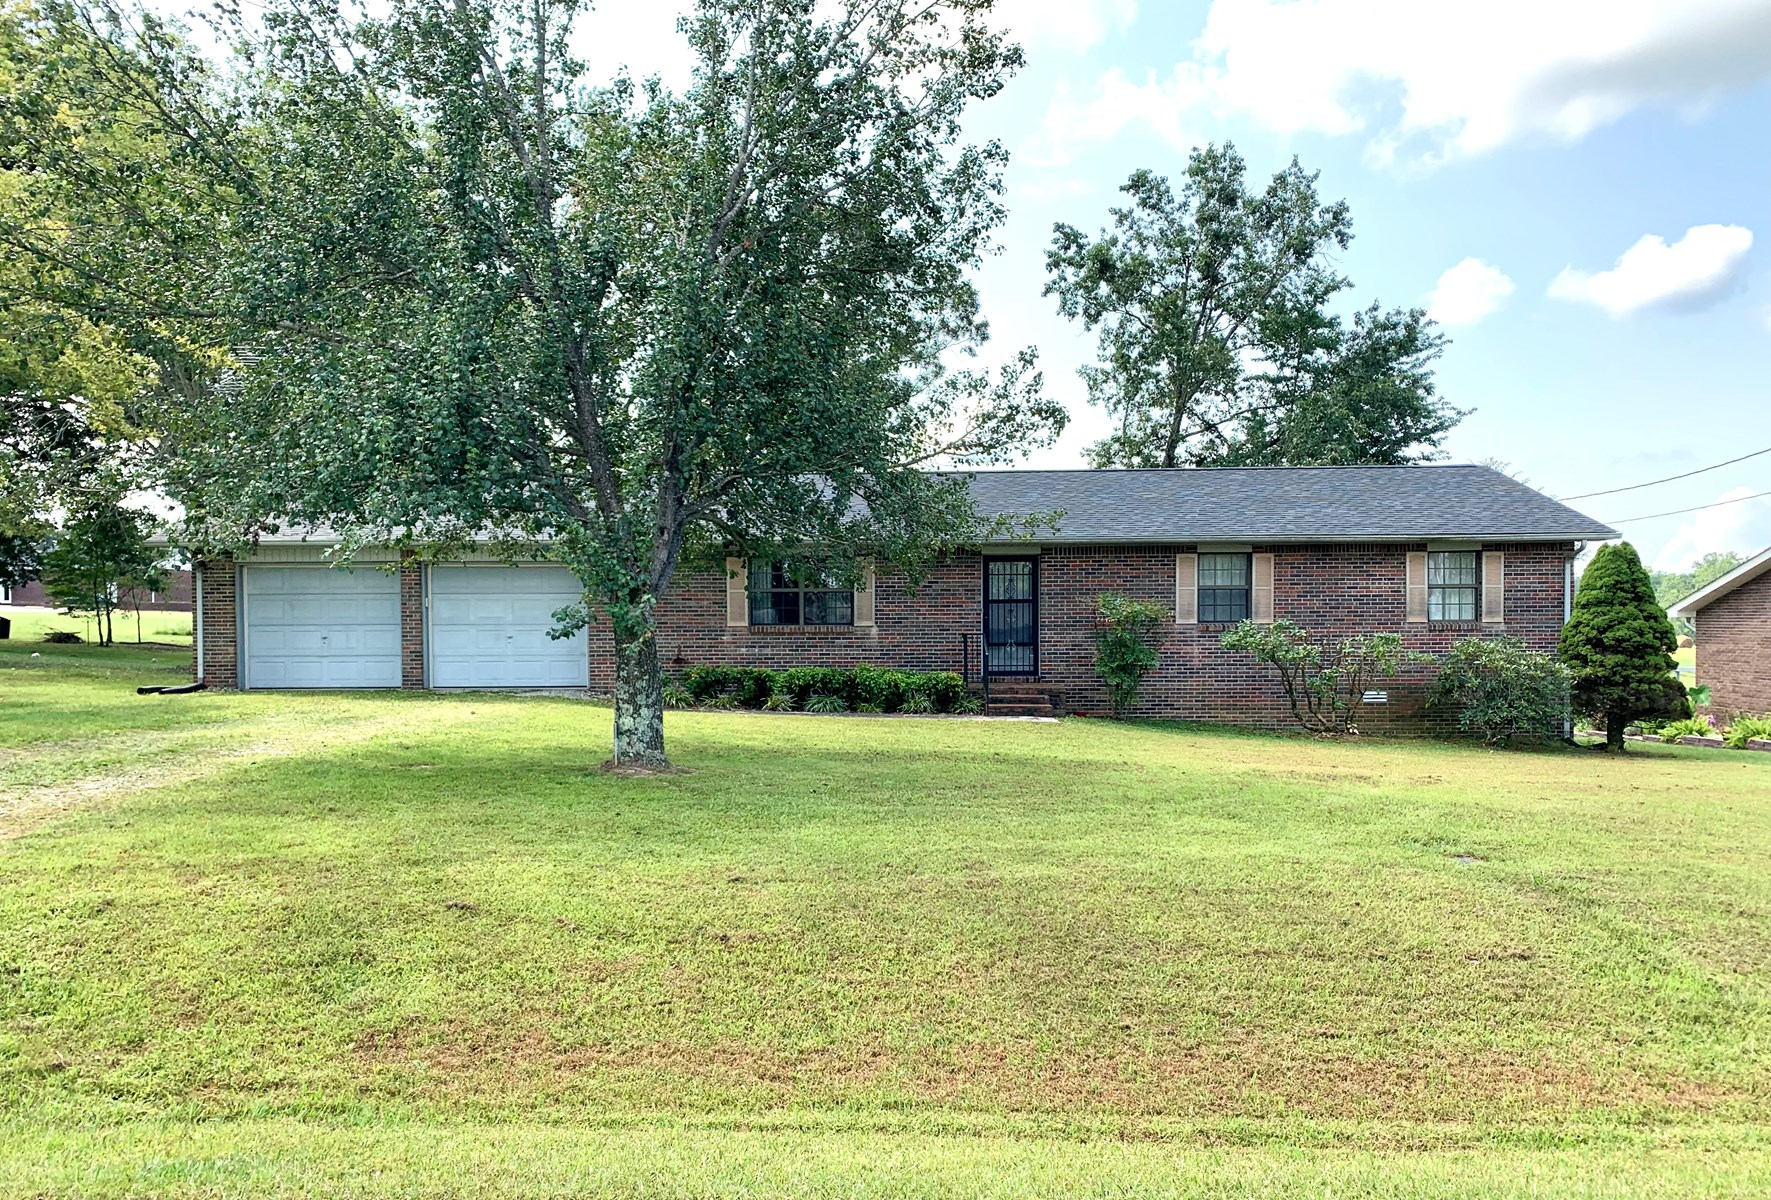 Country Home for sale 216 South Drive Cookeville TN 38501